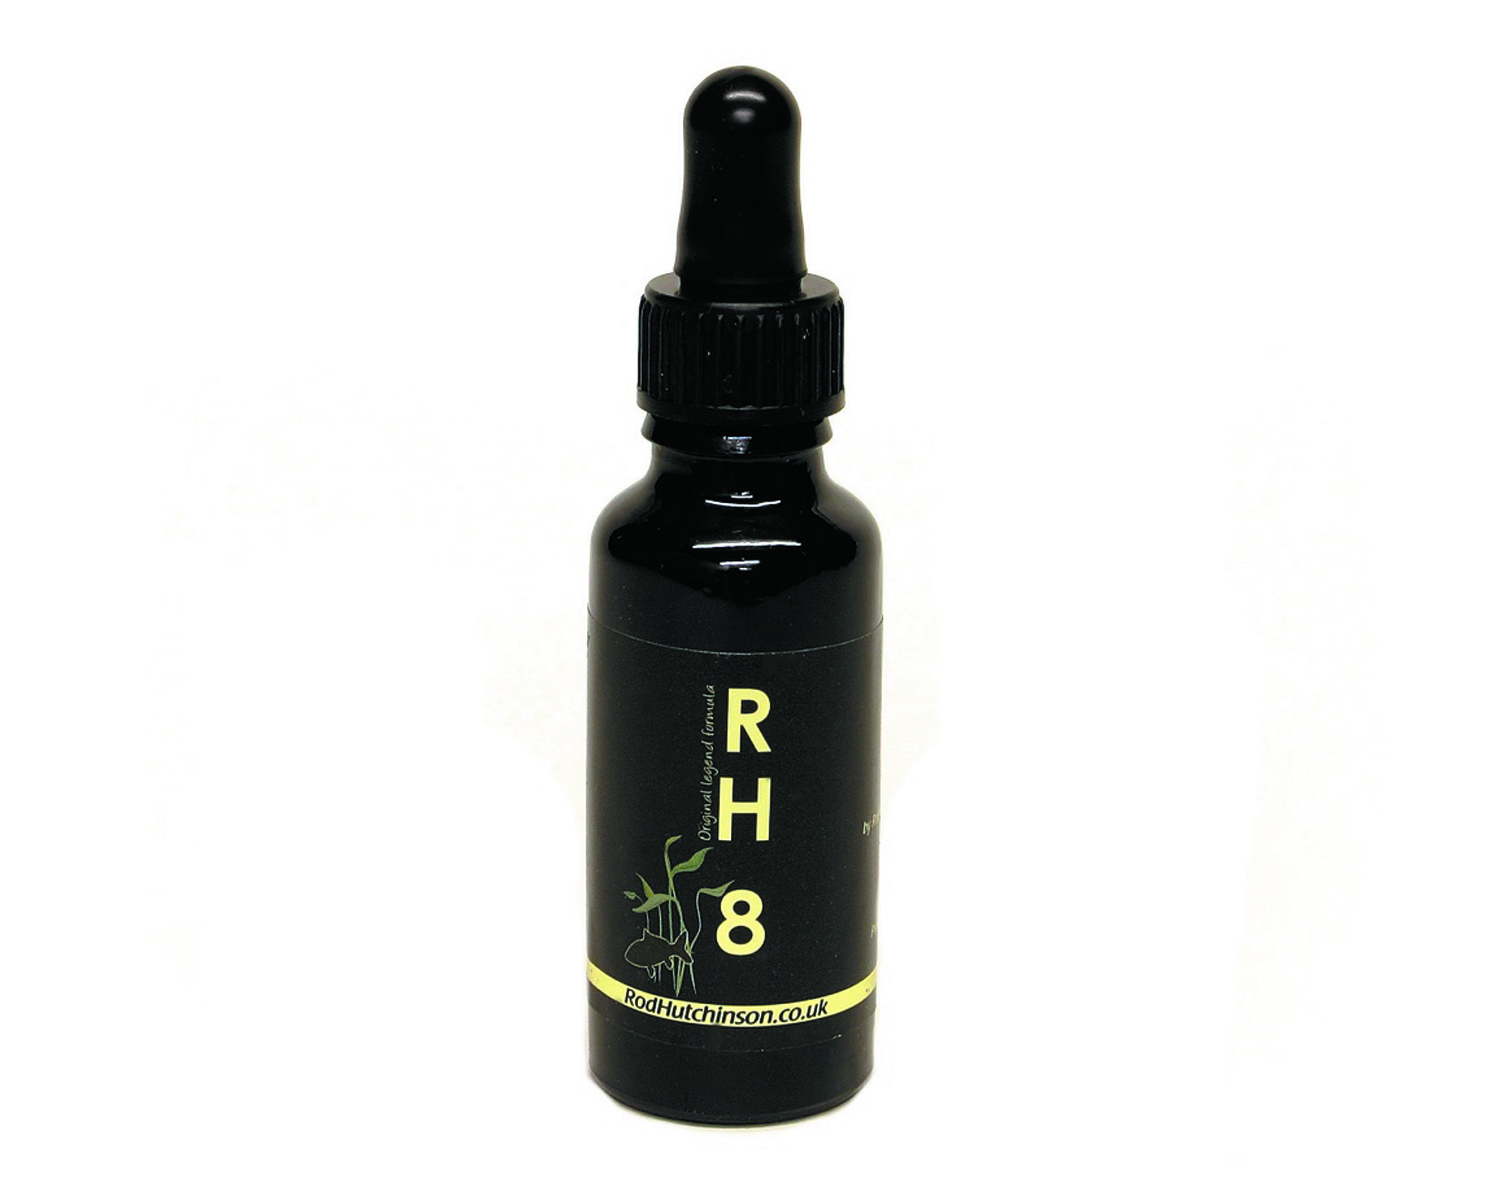 RH Bottle of Essential Oil R.H.8 30ml